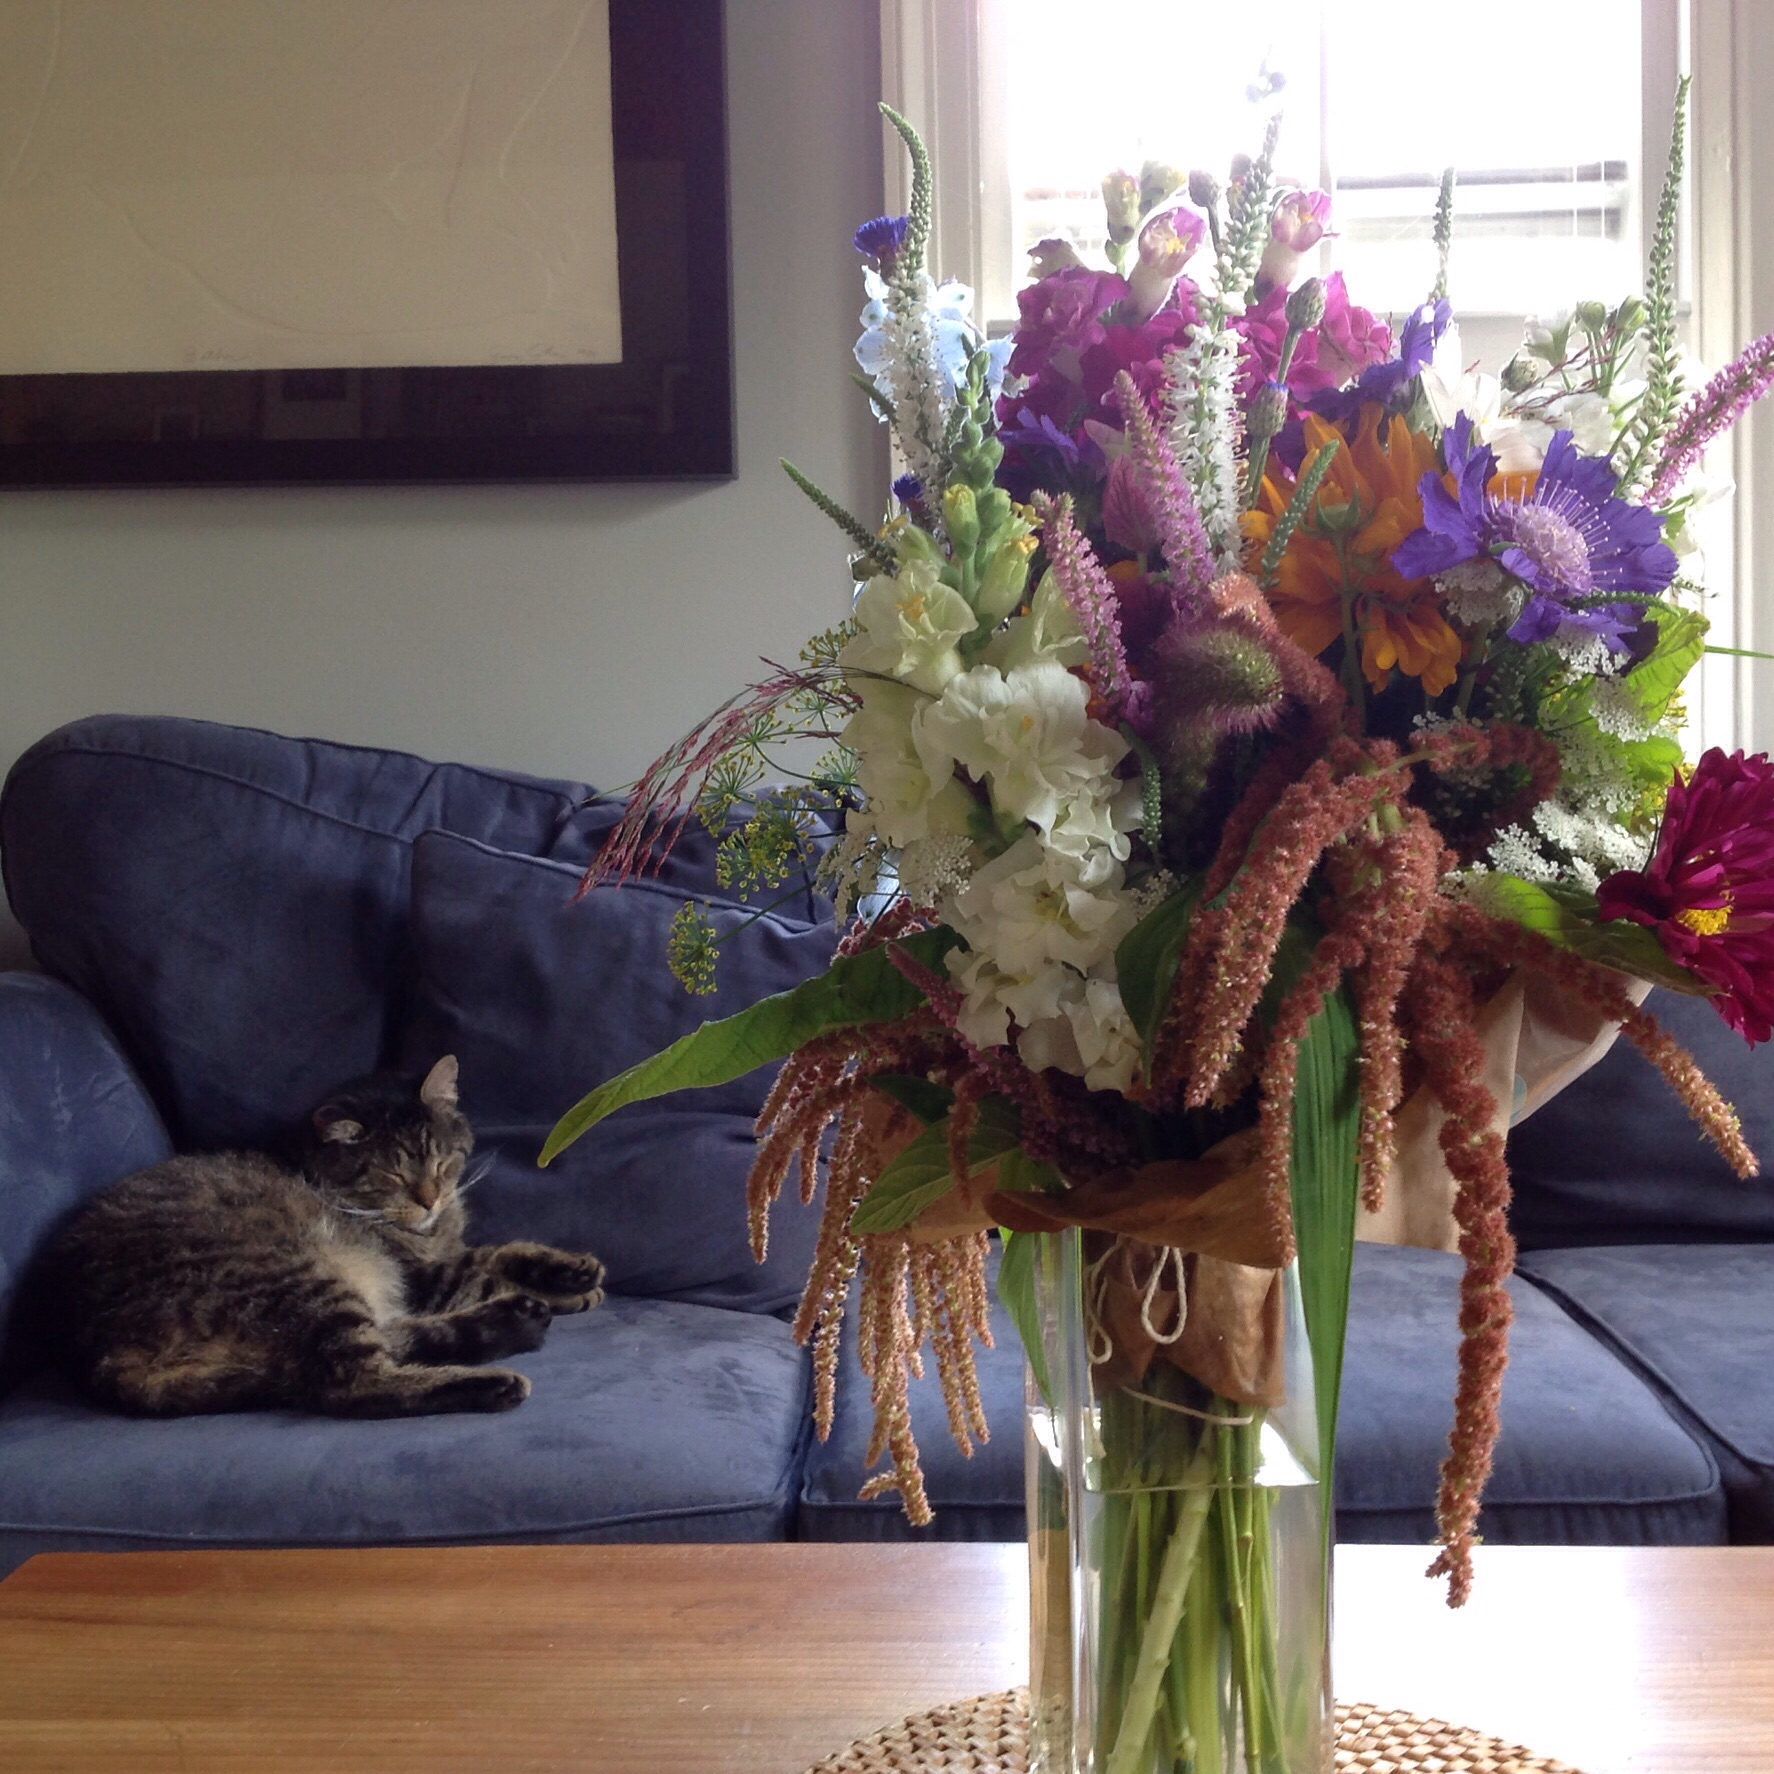 Sleepy Fozzie and a bouquet of local cut flowers to bring summer's many colors indoors.